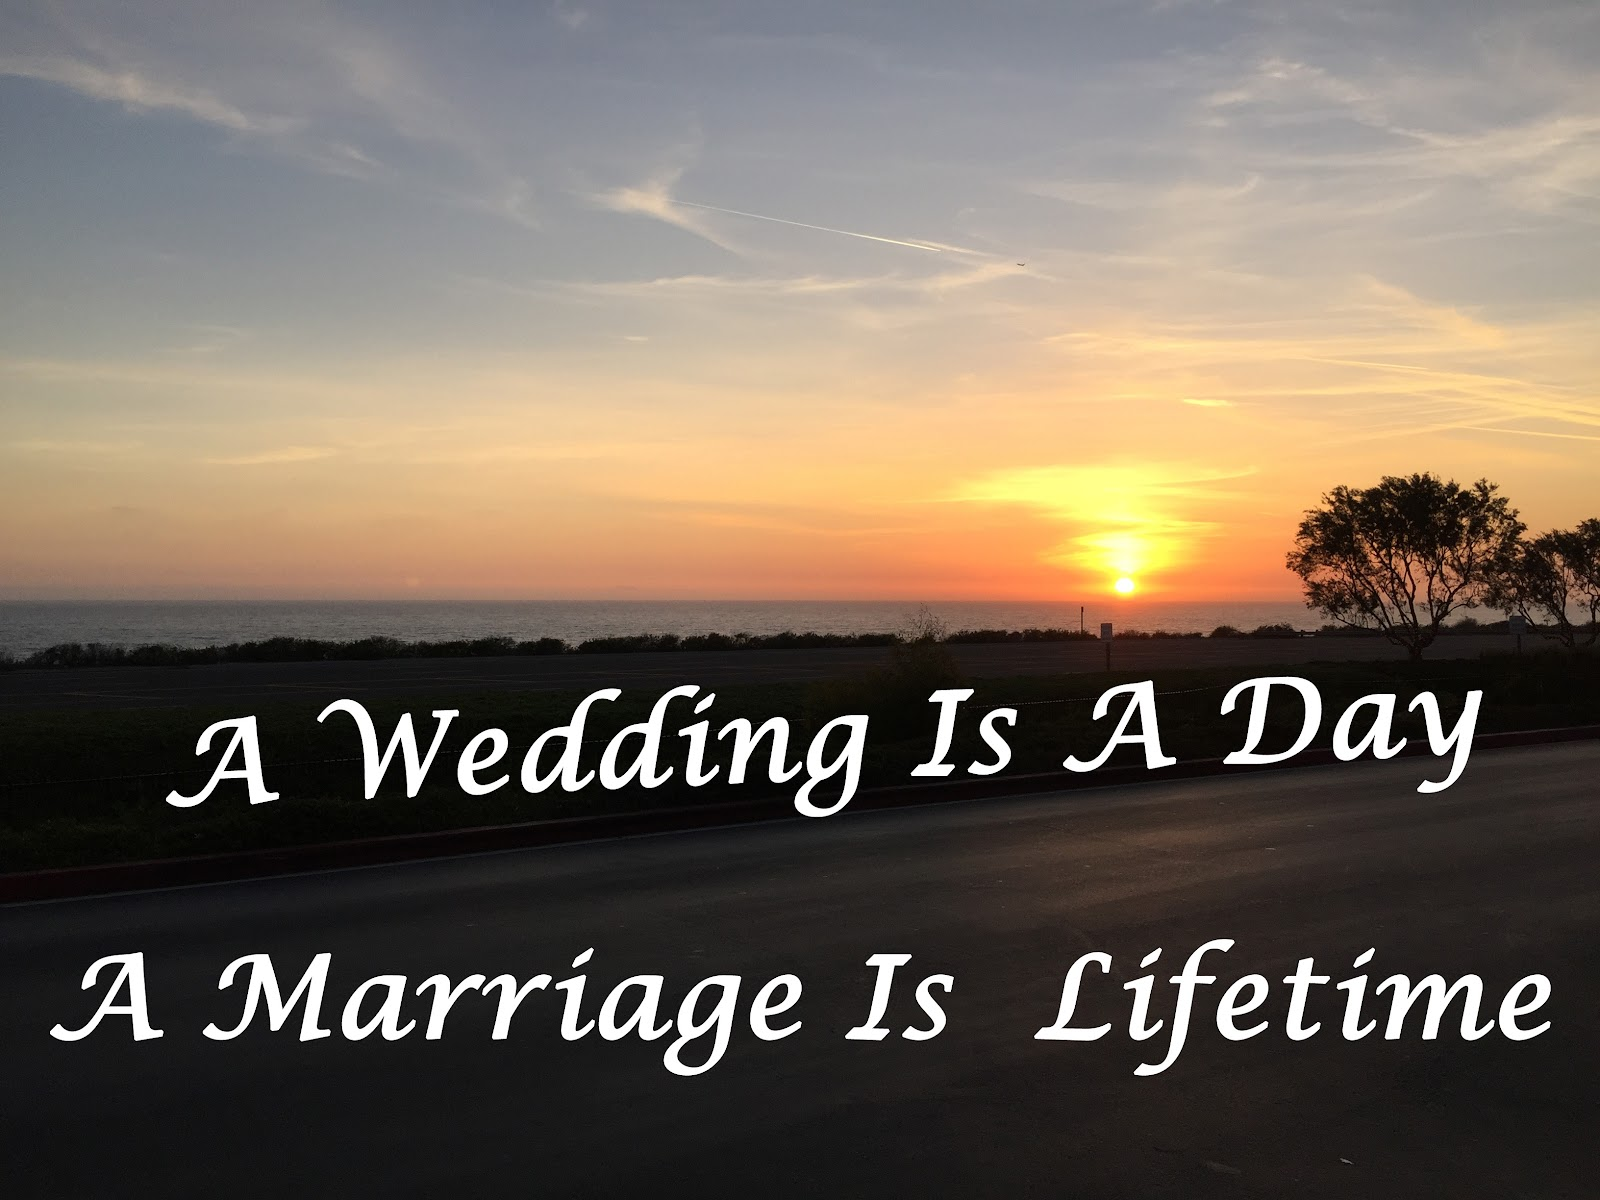 is marriage a lifetime commitment Breaking that commitment of fidelity in adultery not only makes one a liar to the spouse and the people before whom the promise was made at the wedding, but also before god he was a witness to the promise as well.